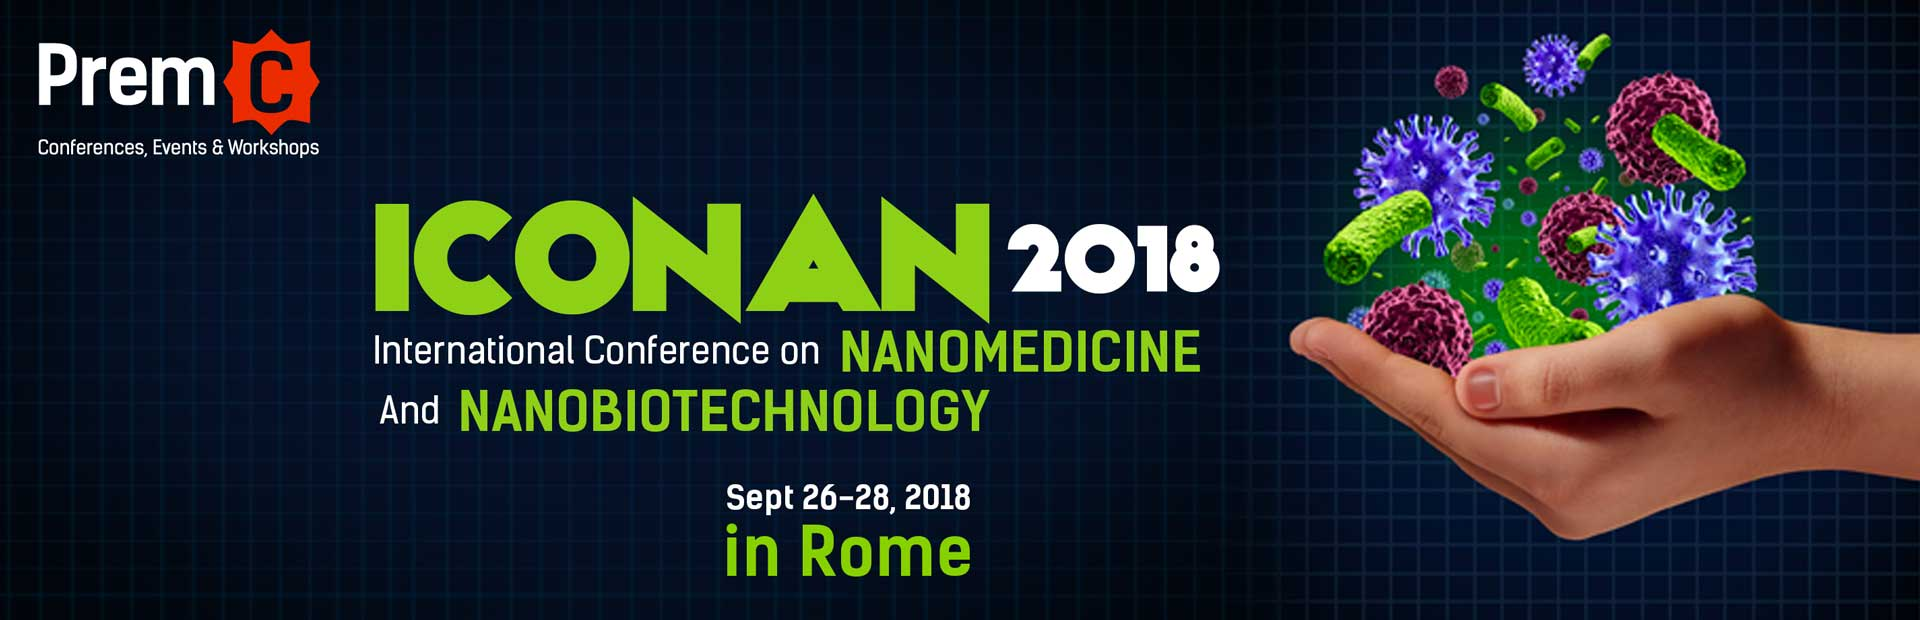 International Conference On Nanomedicine And Nanobiotechnology 2018